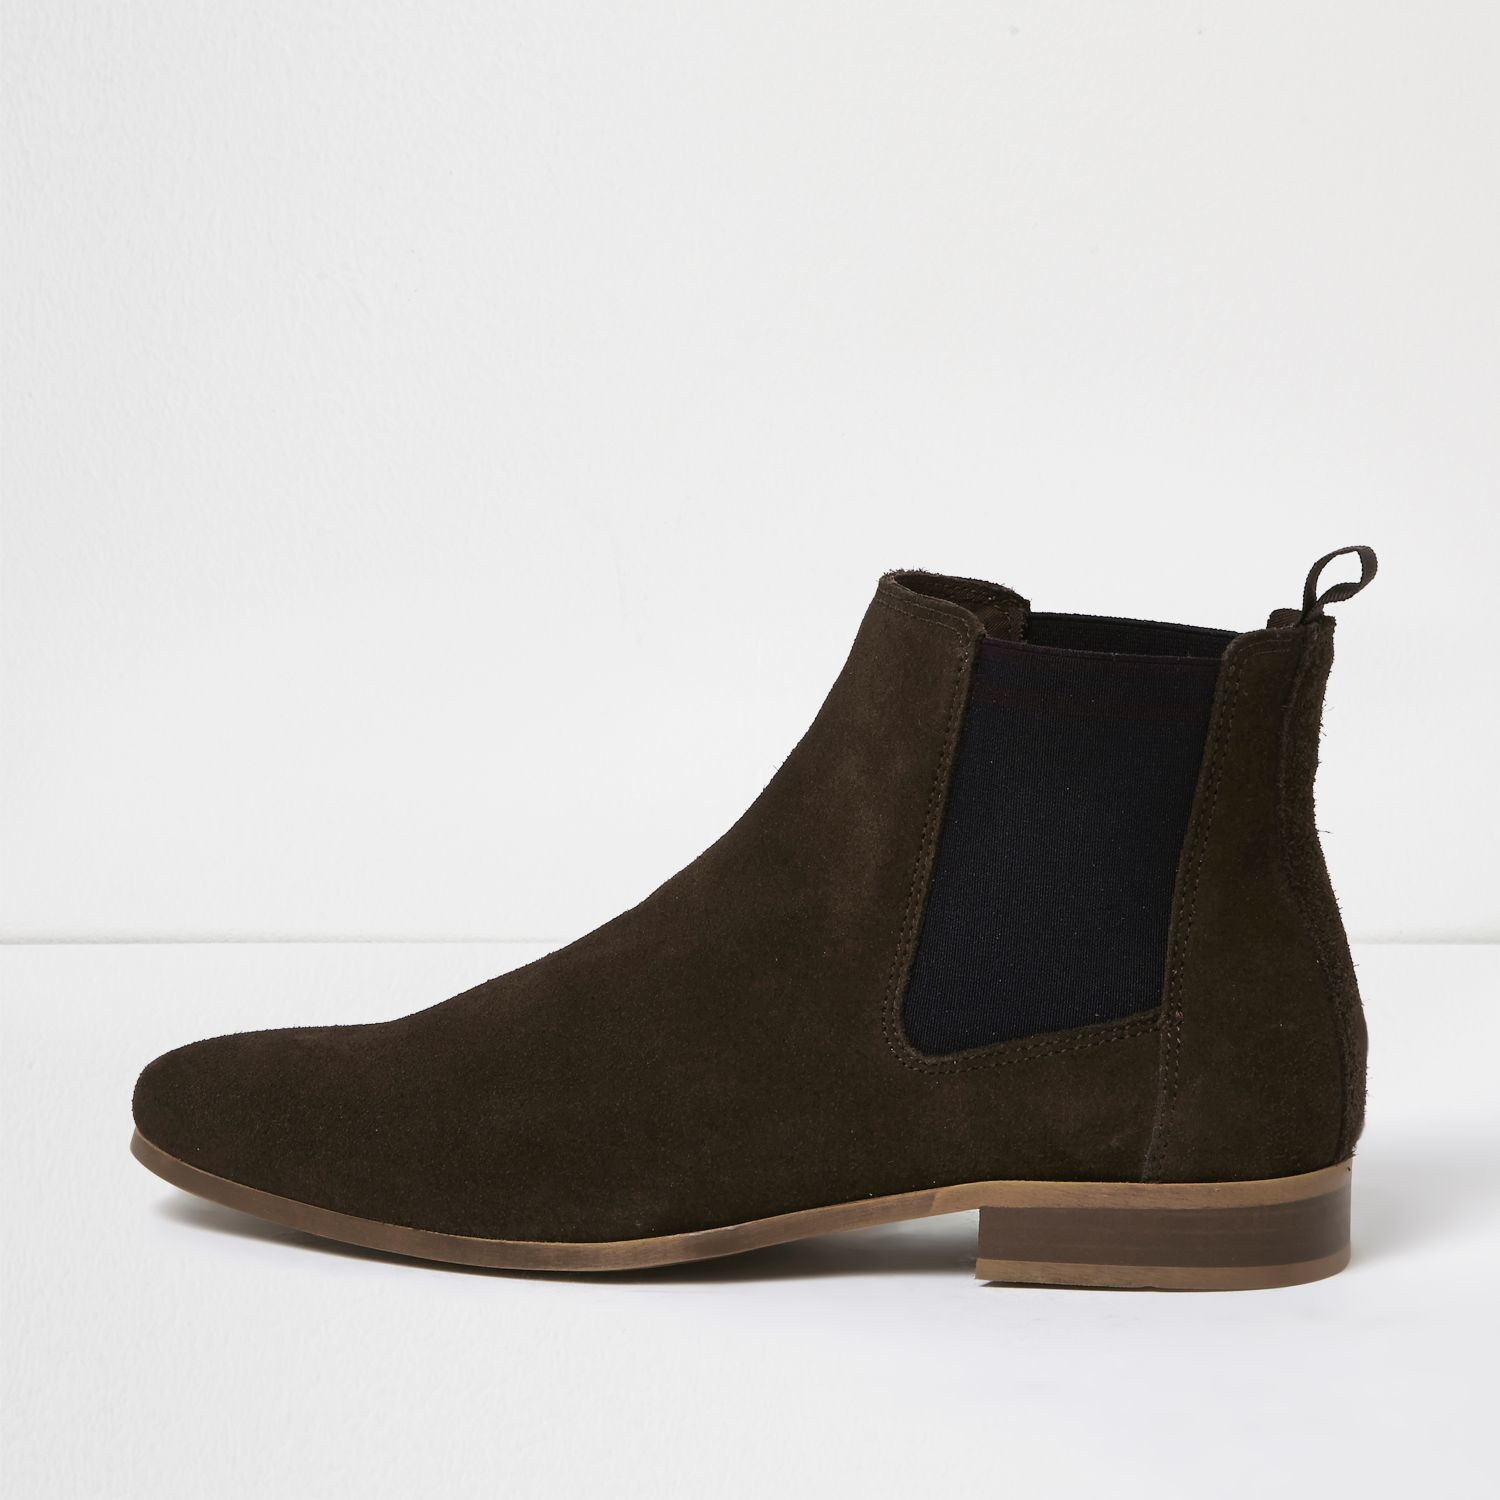 River Island Black Suede Combat Boots